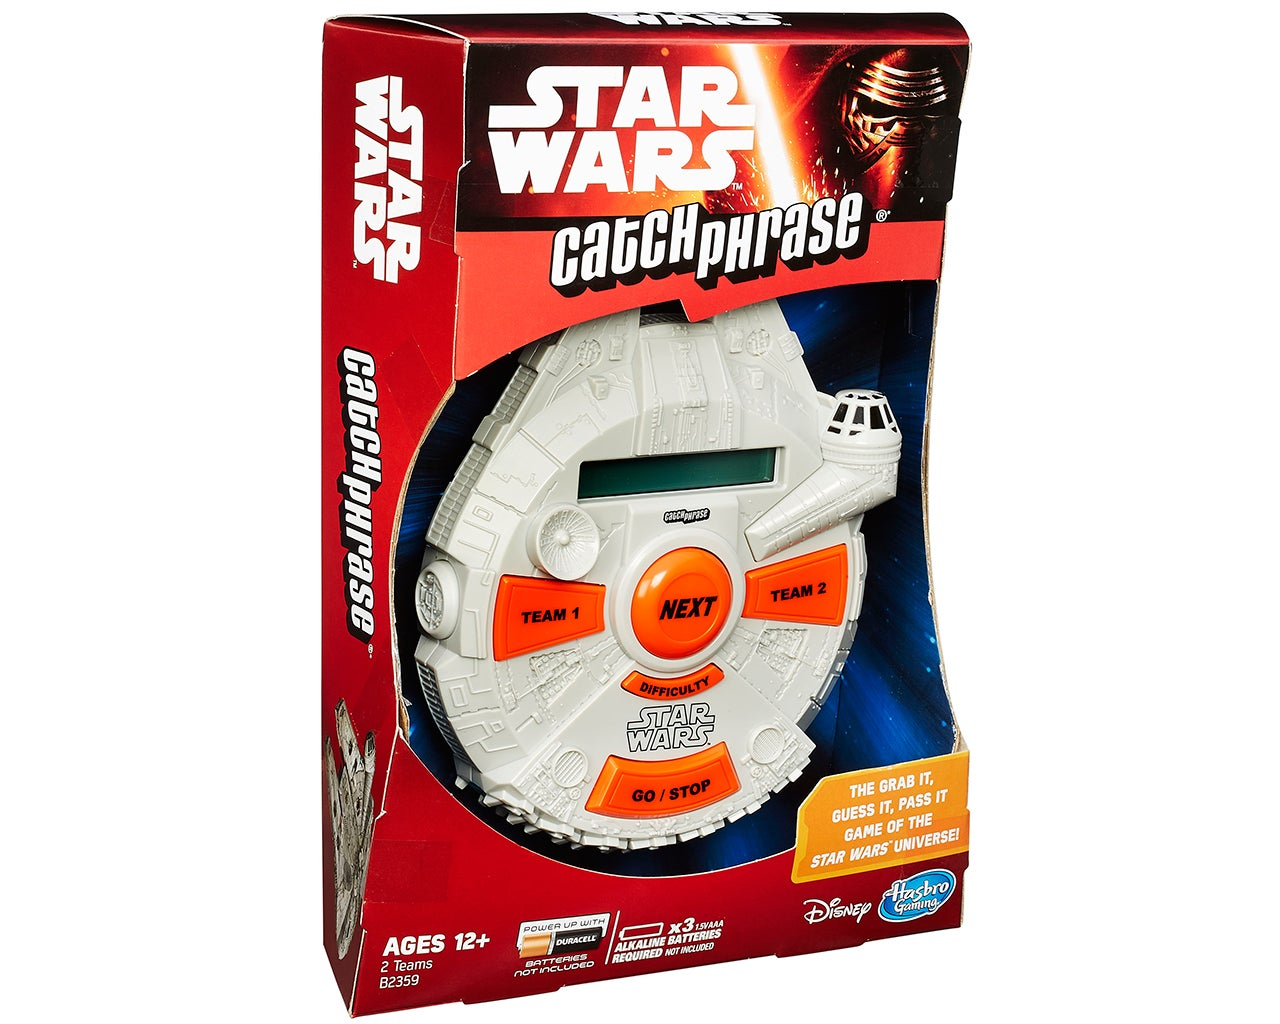 Catch Phrase Is Slightly Easier When Every Clue Is Star Wars Related